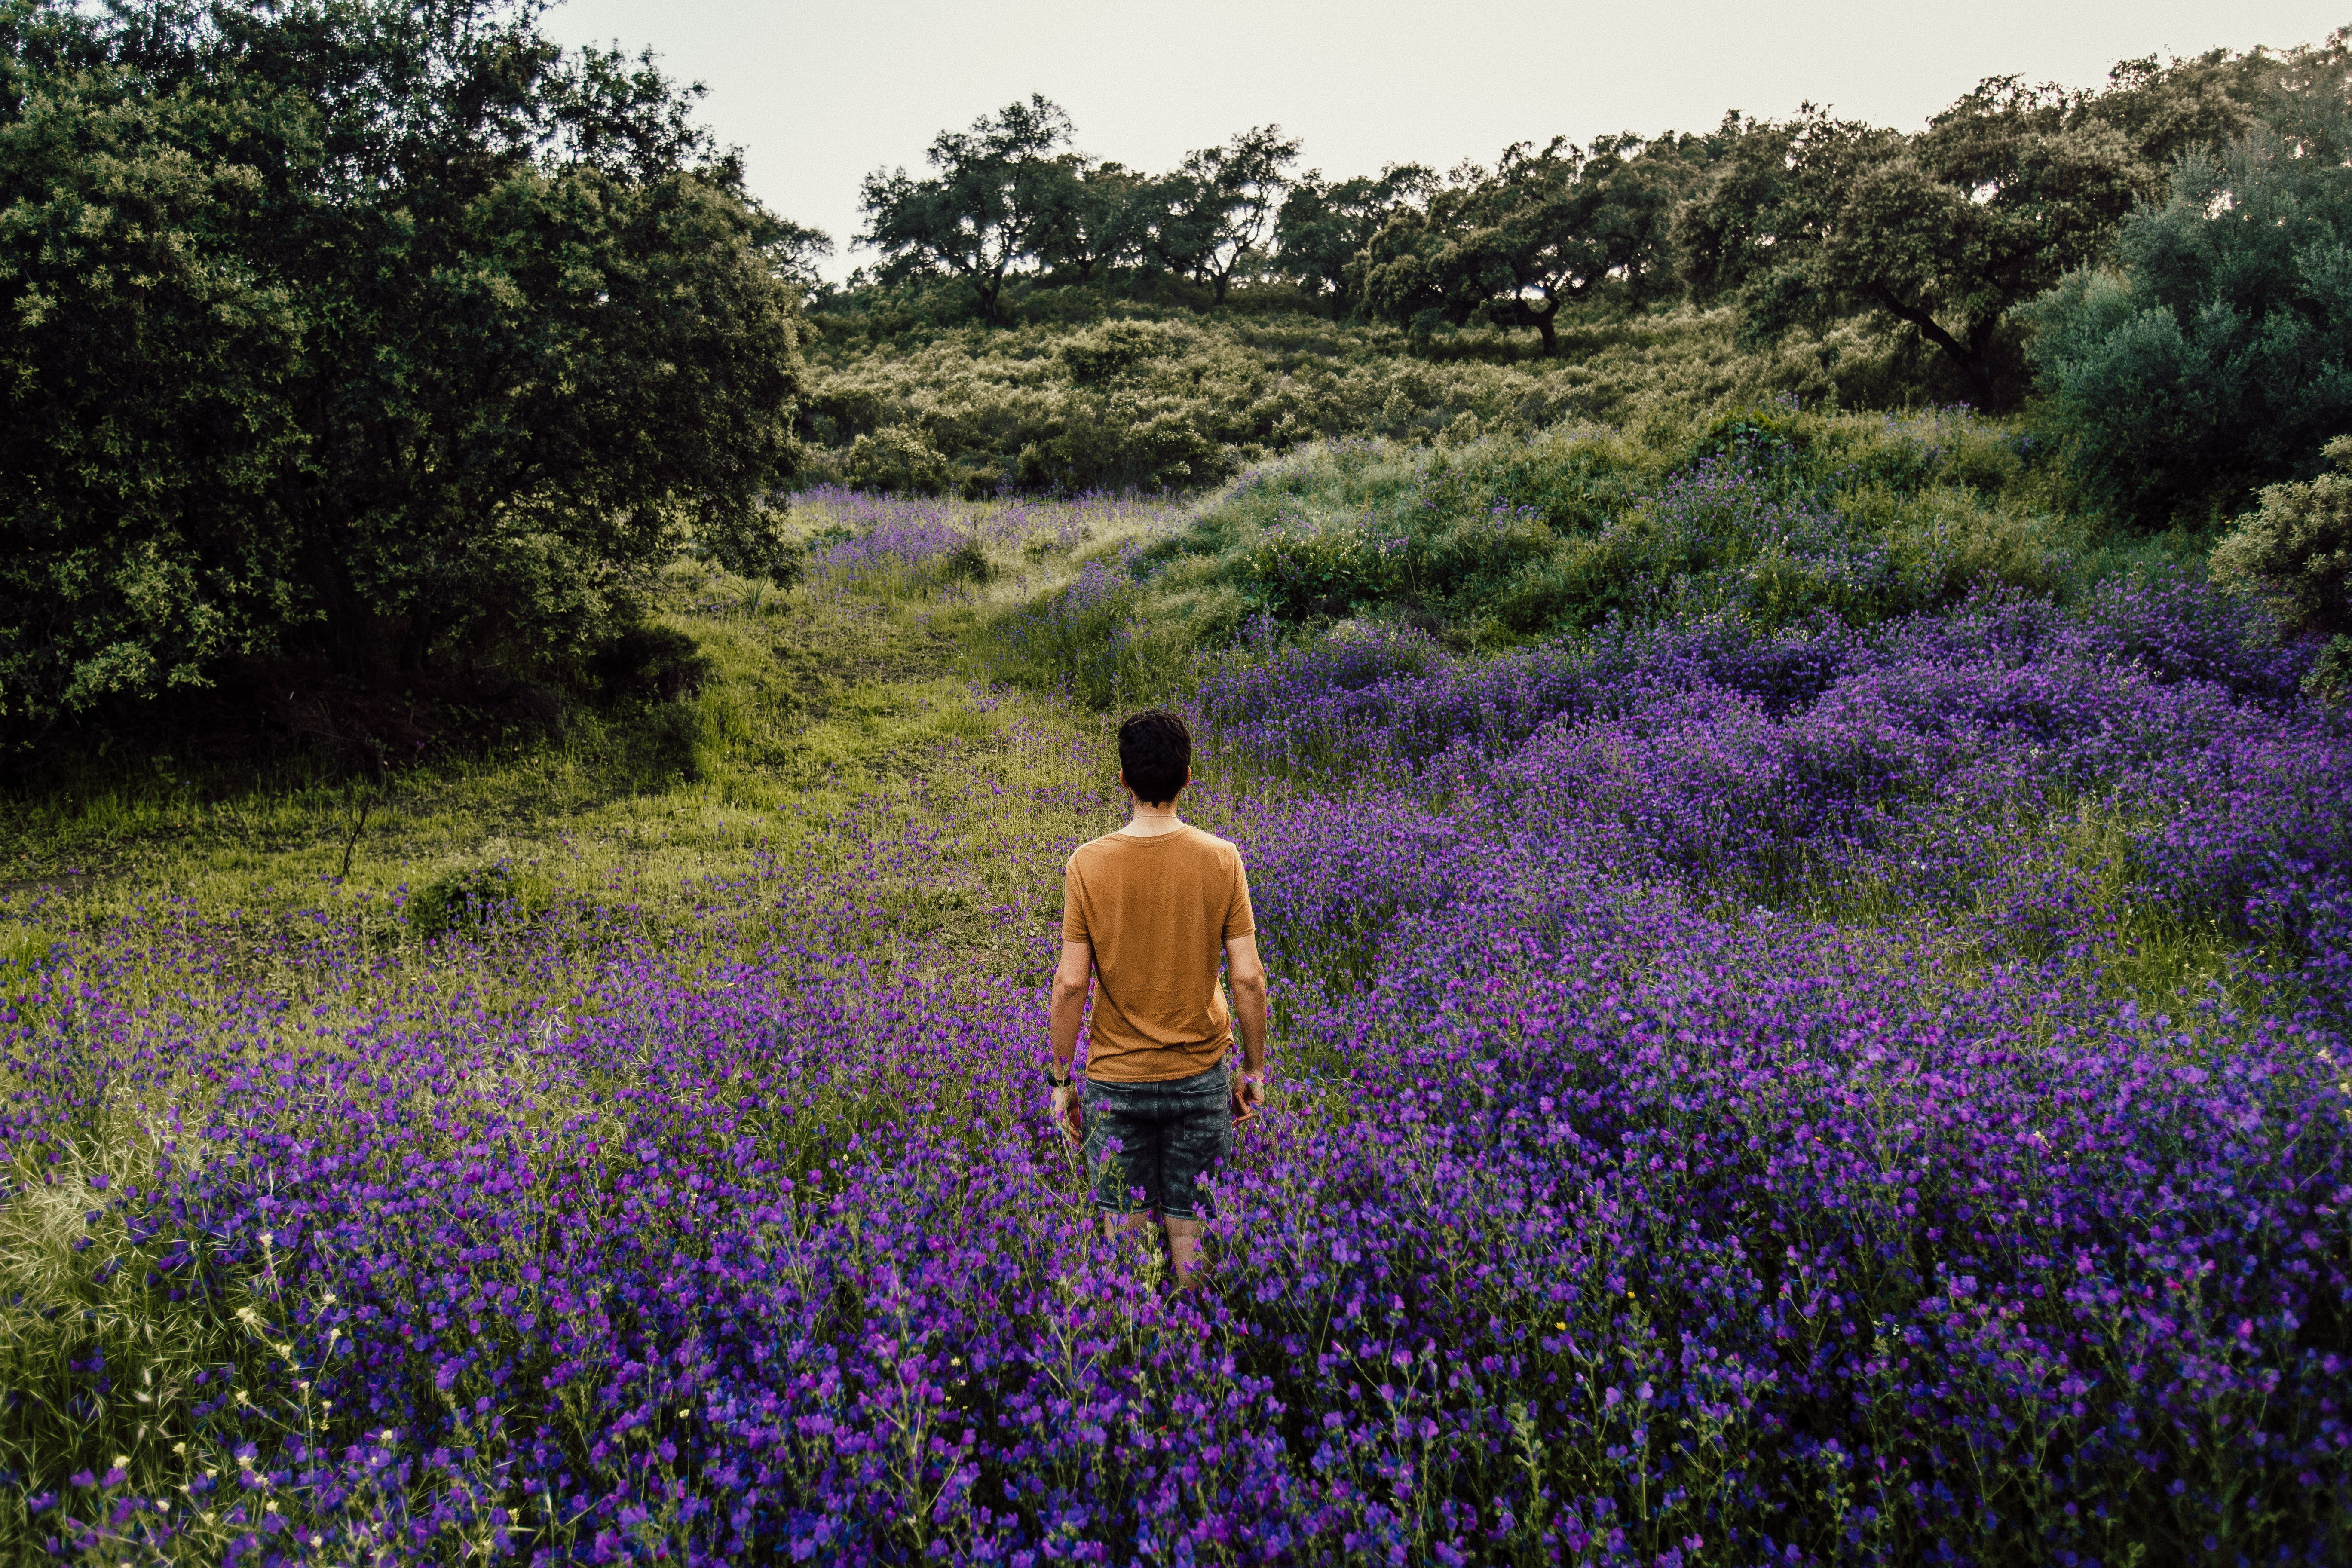 Person Standing on Bed of Lavender Flowers